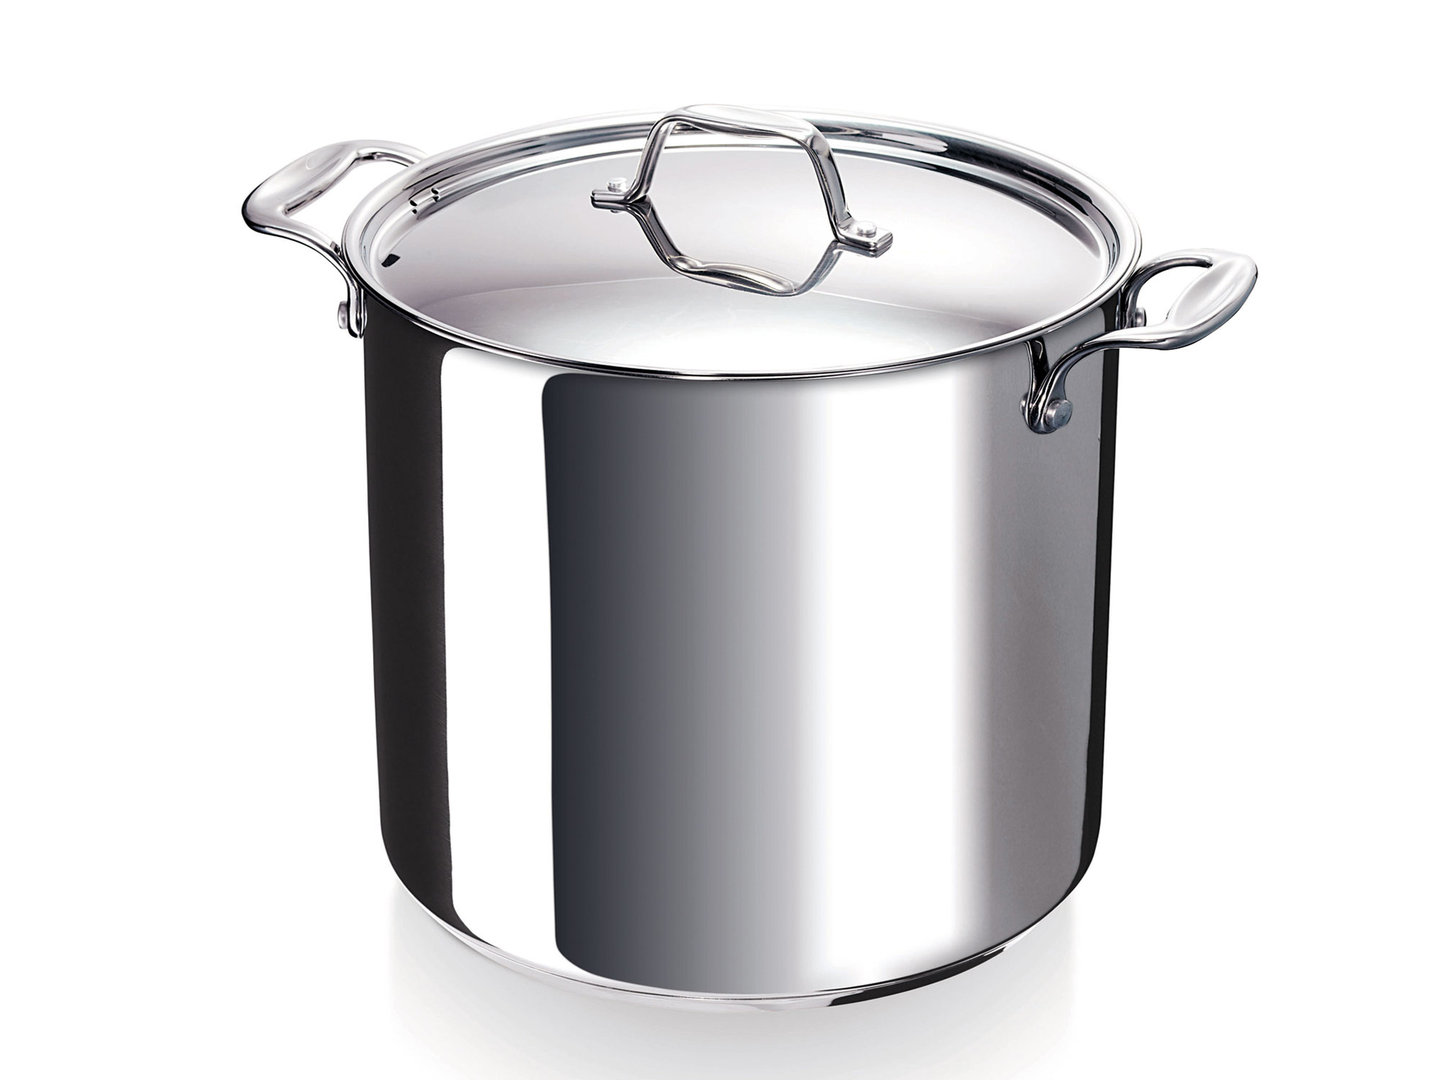 BEKA stockpot CHEF with lid 24 cm stainless steel deep casserole 10 Liter